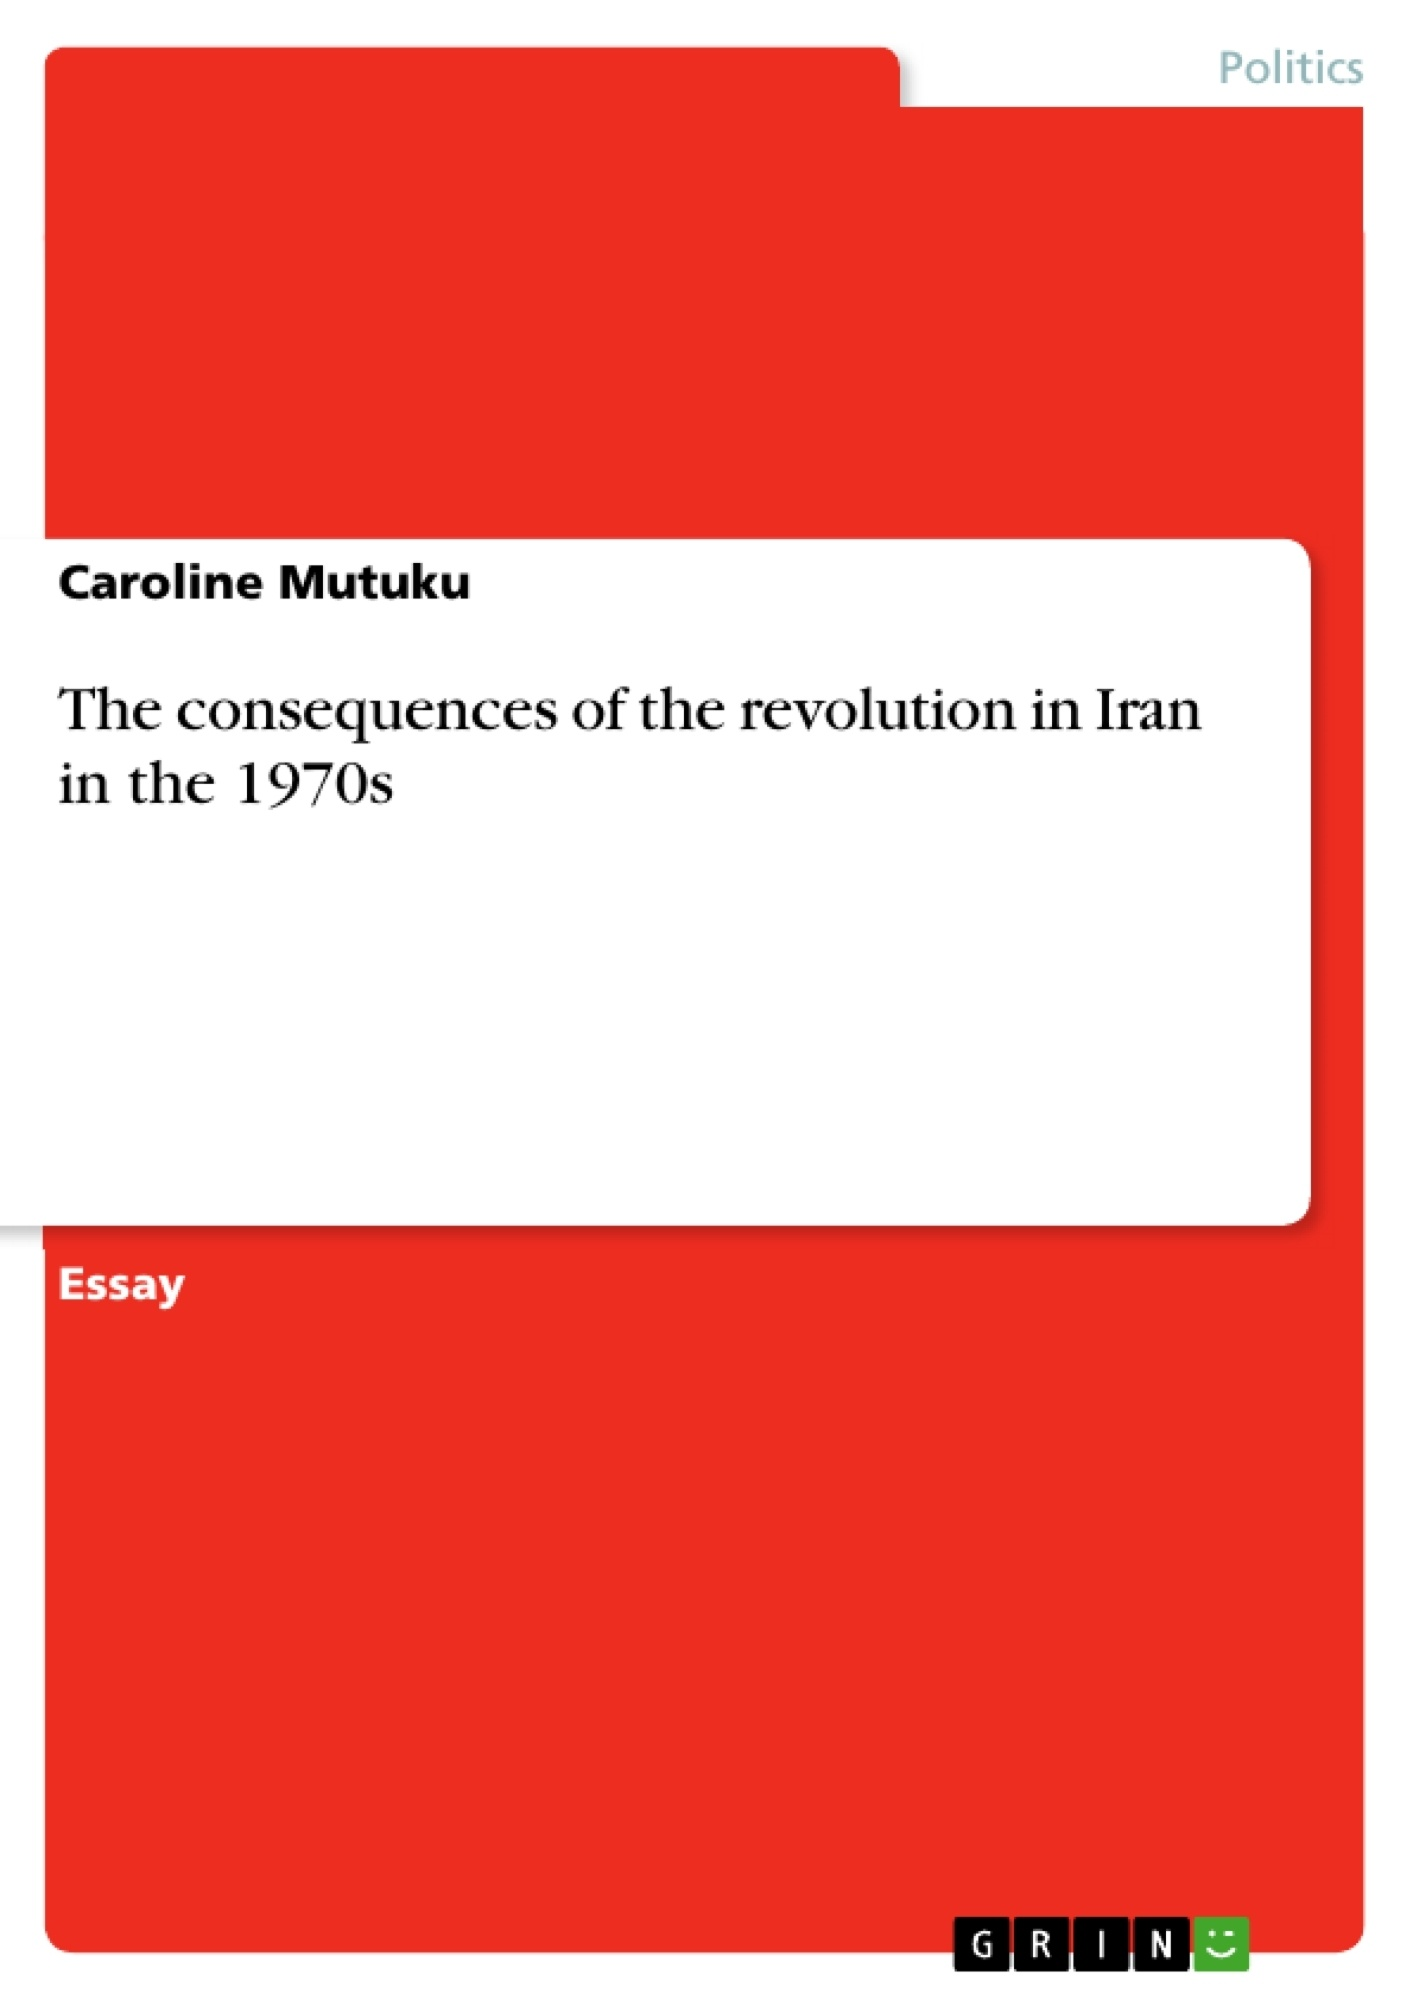 Title: The consequences of the revolution in Iran in the 1970s